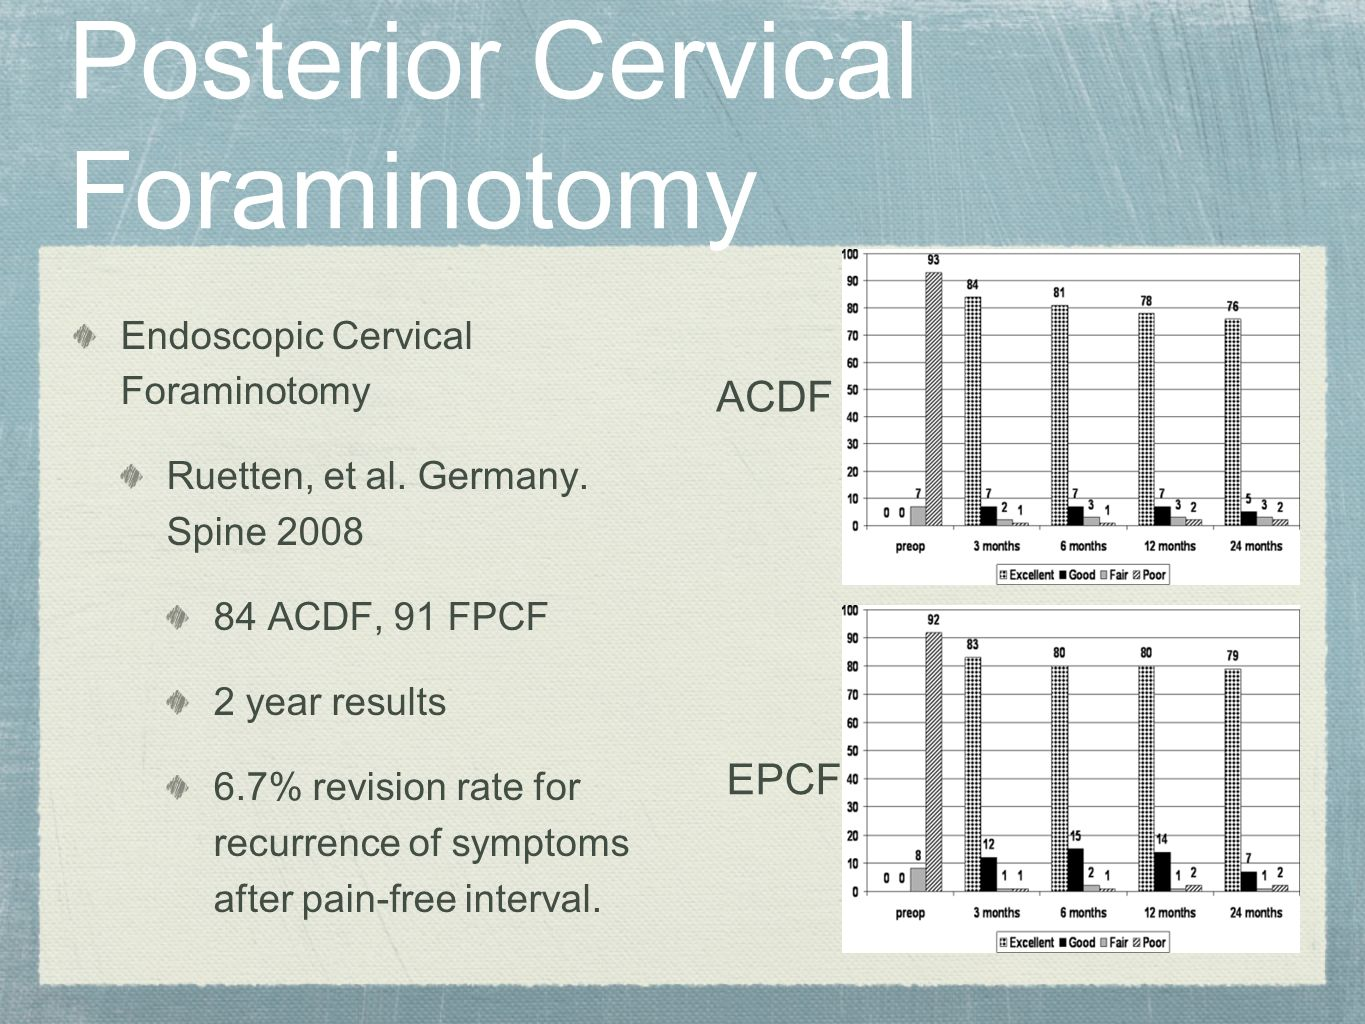 Endoscopic Cervical Foraminotomy Ruetten, et al. Germany. Spine 2008 84 ACDF, 91 FPCF 2 year results 6.7% revision rate for recurrence of symptoms aft